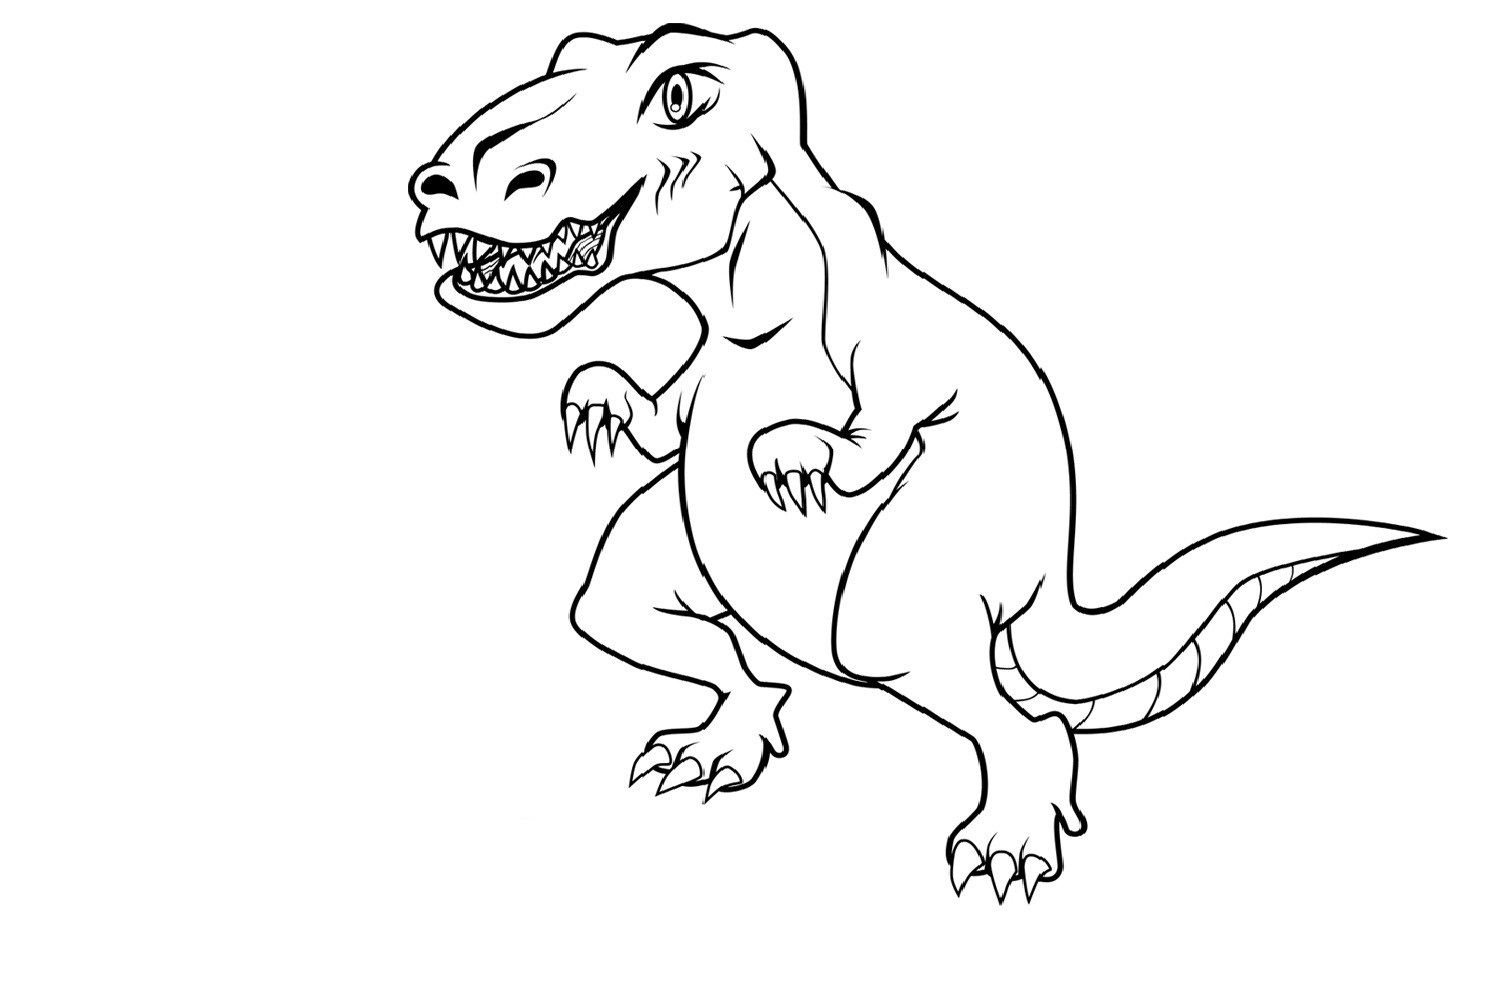 Free Printable Dinosaur Coloring Pages For Kids Printables Coloring Pages